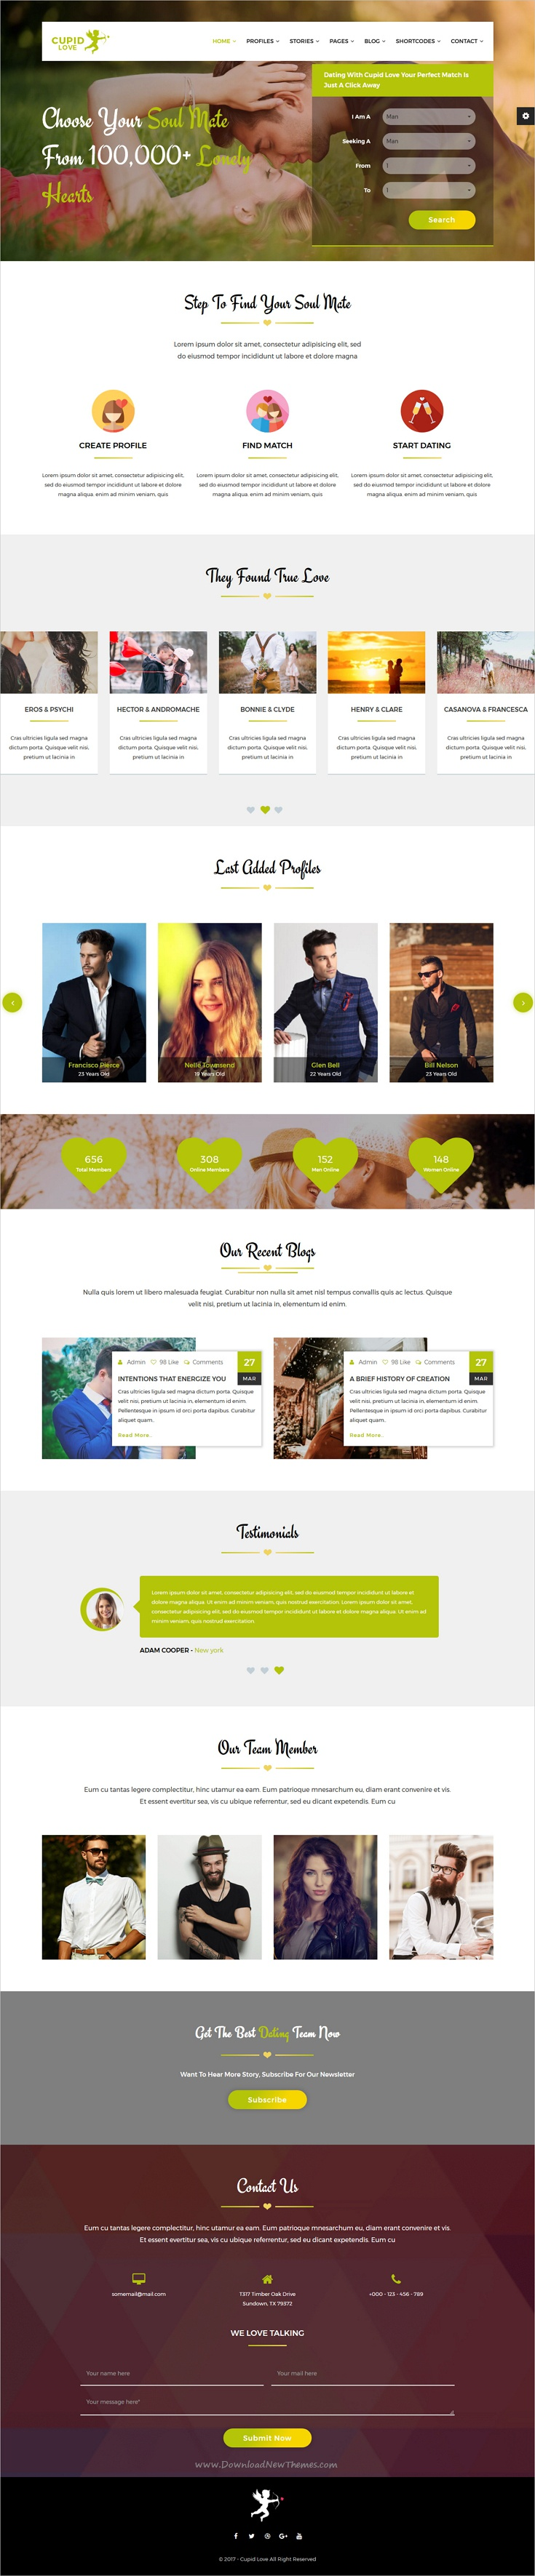 free bootstrap templates for dating